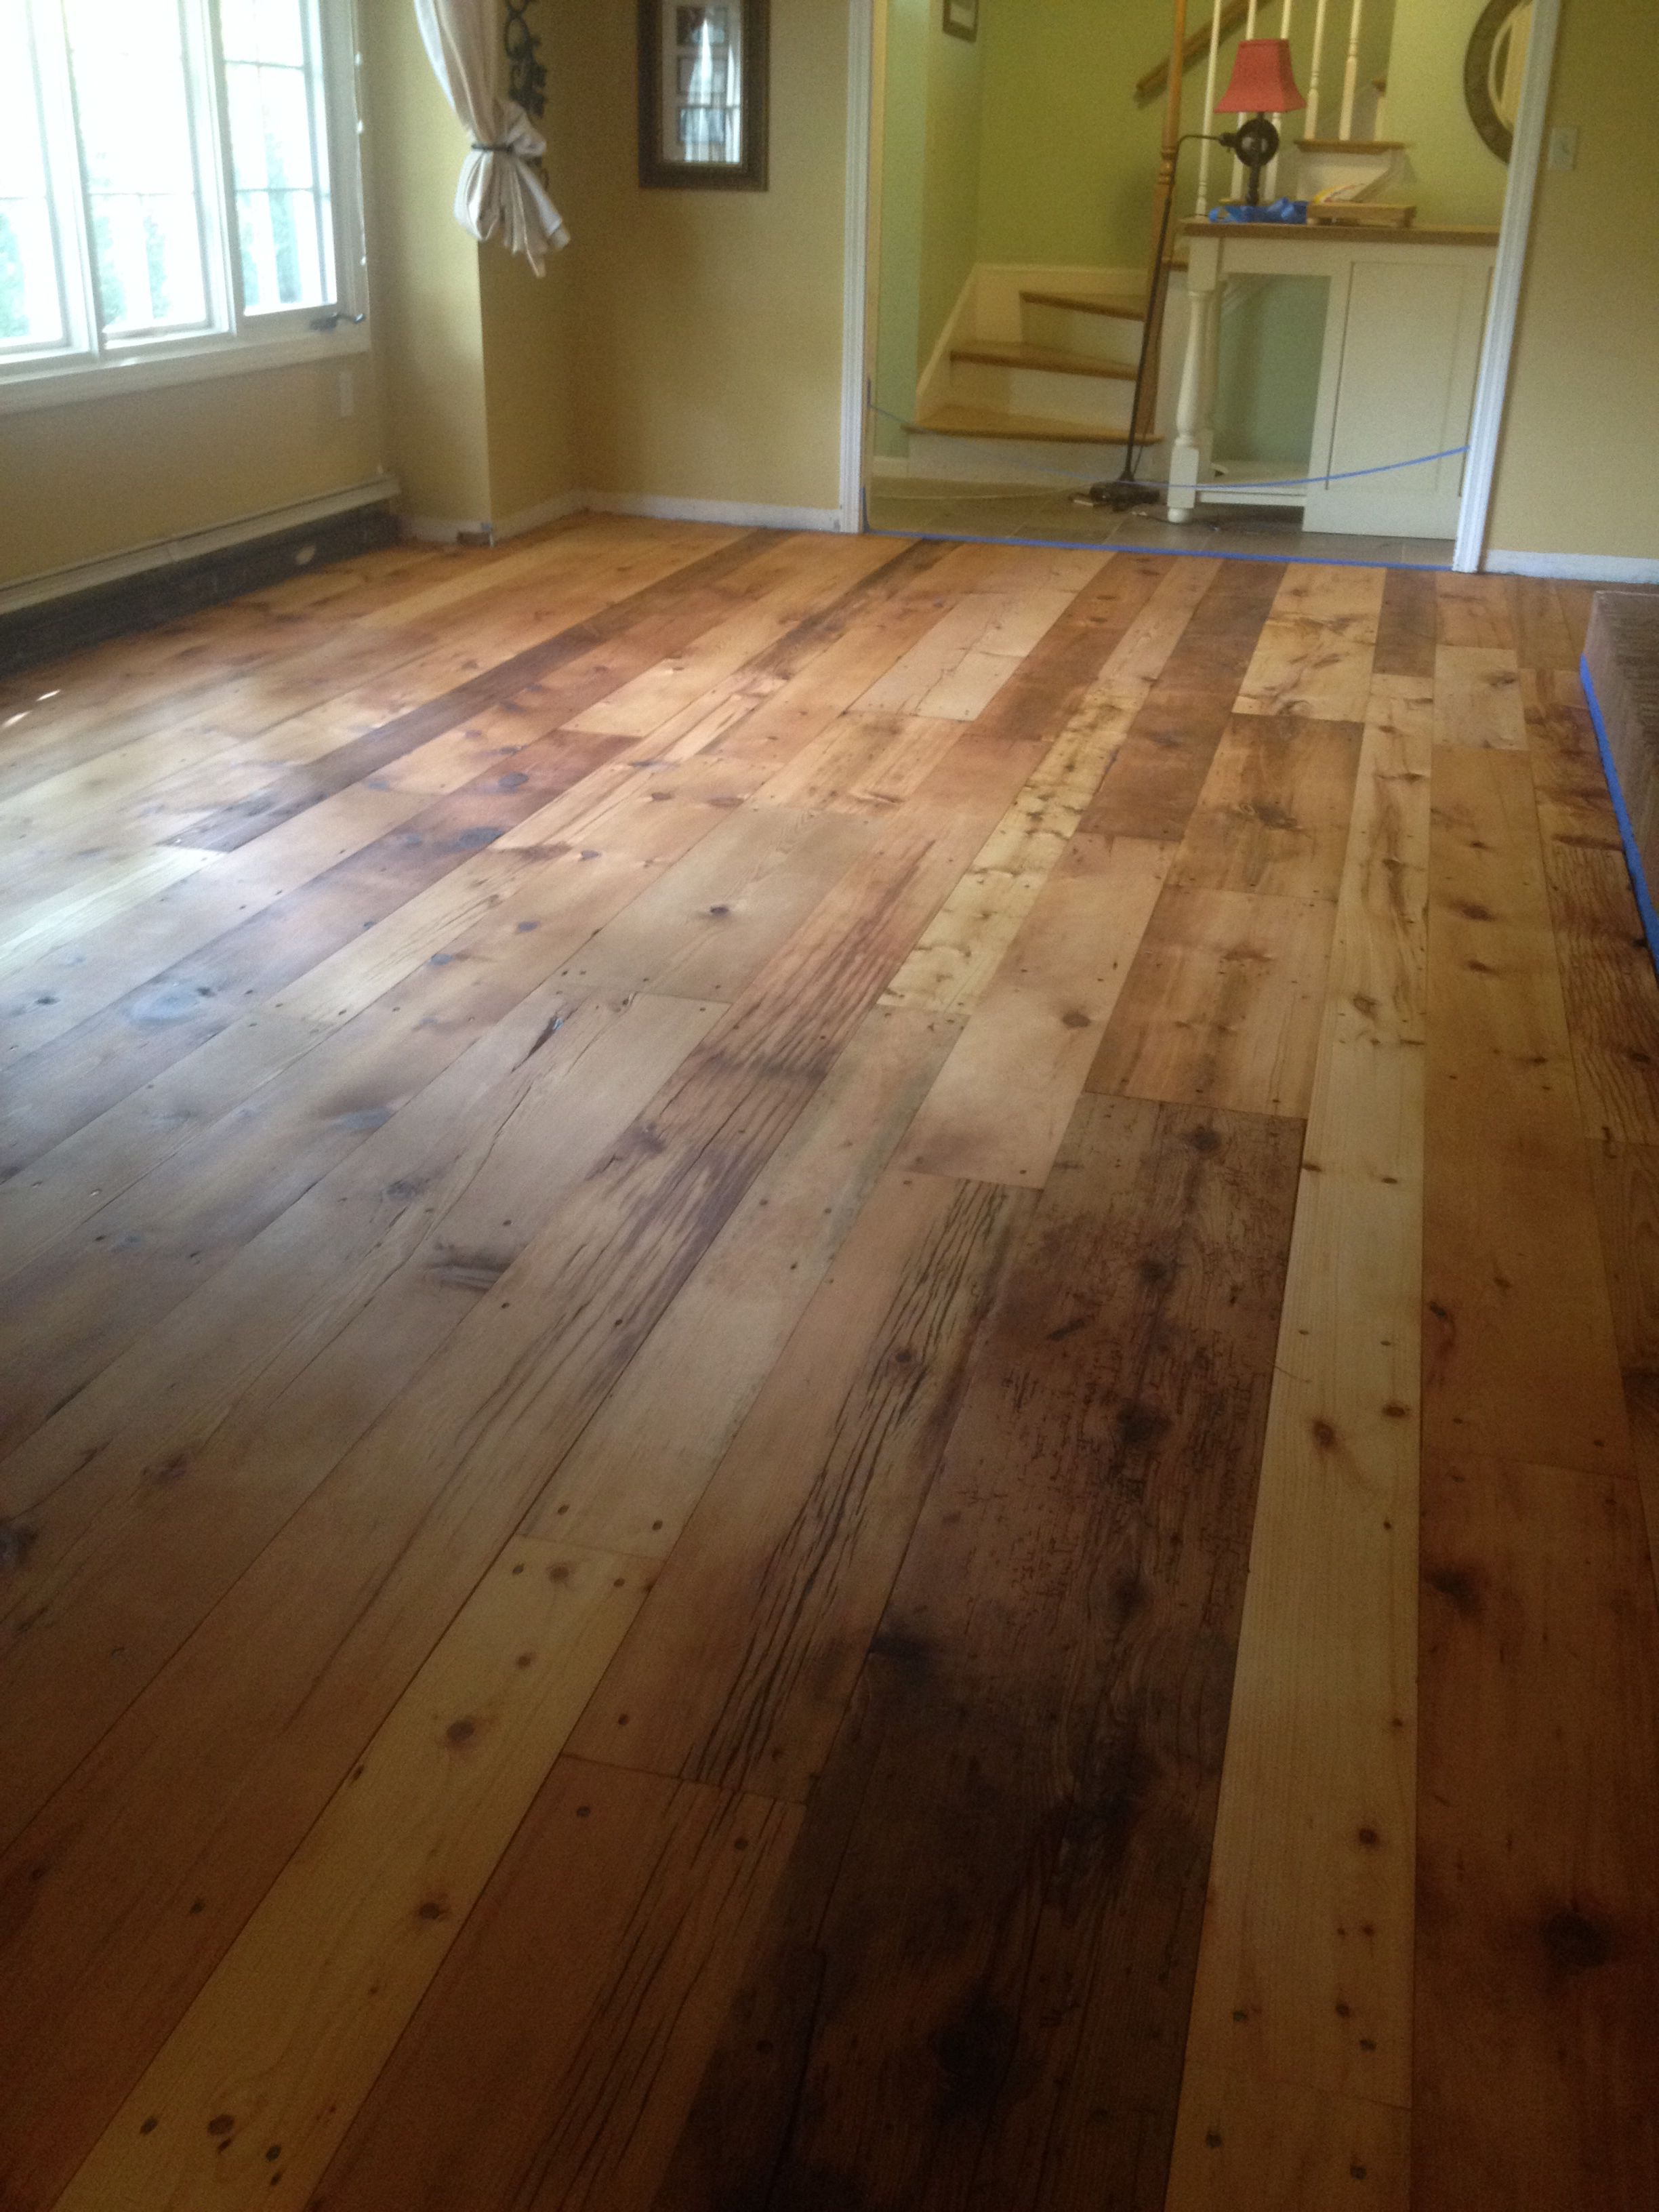 Rustic Barn Board Pine Finished With Ciranova Hard Wax Oil